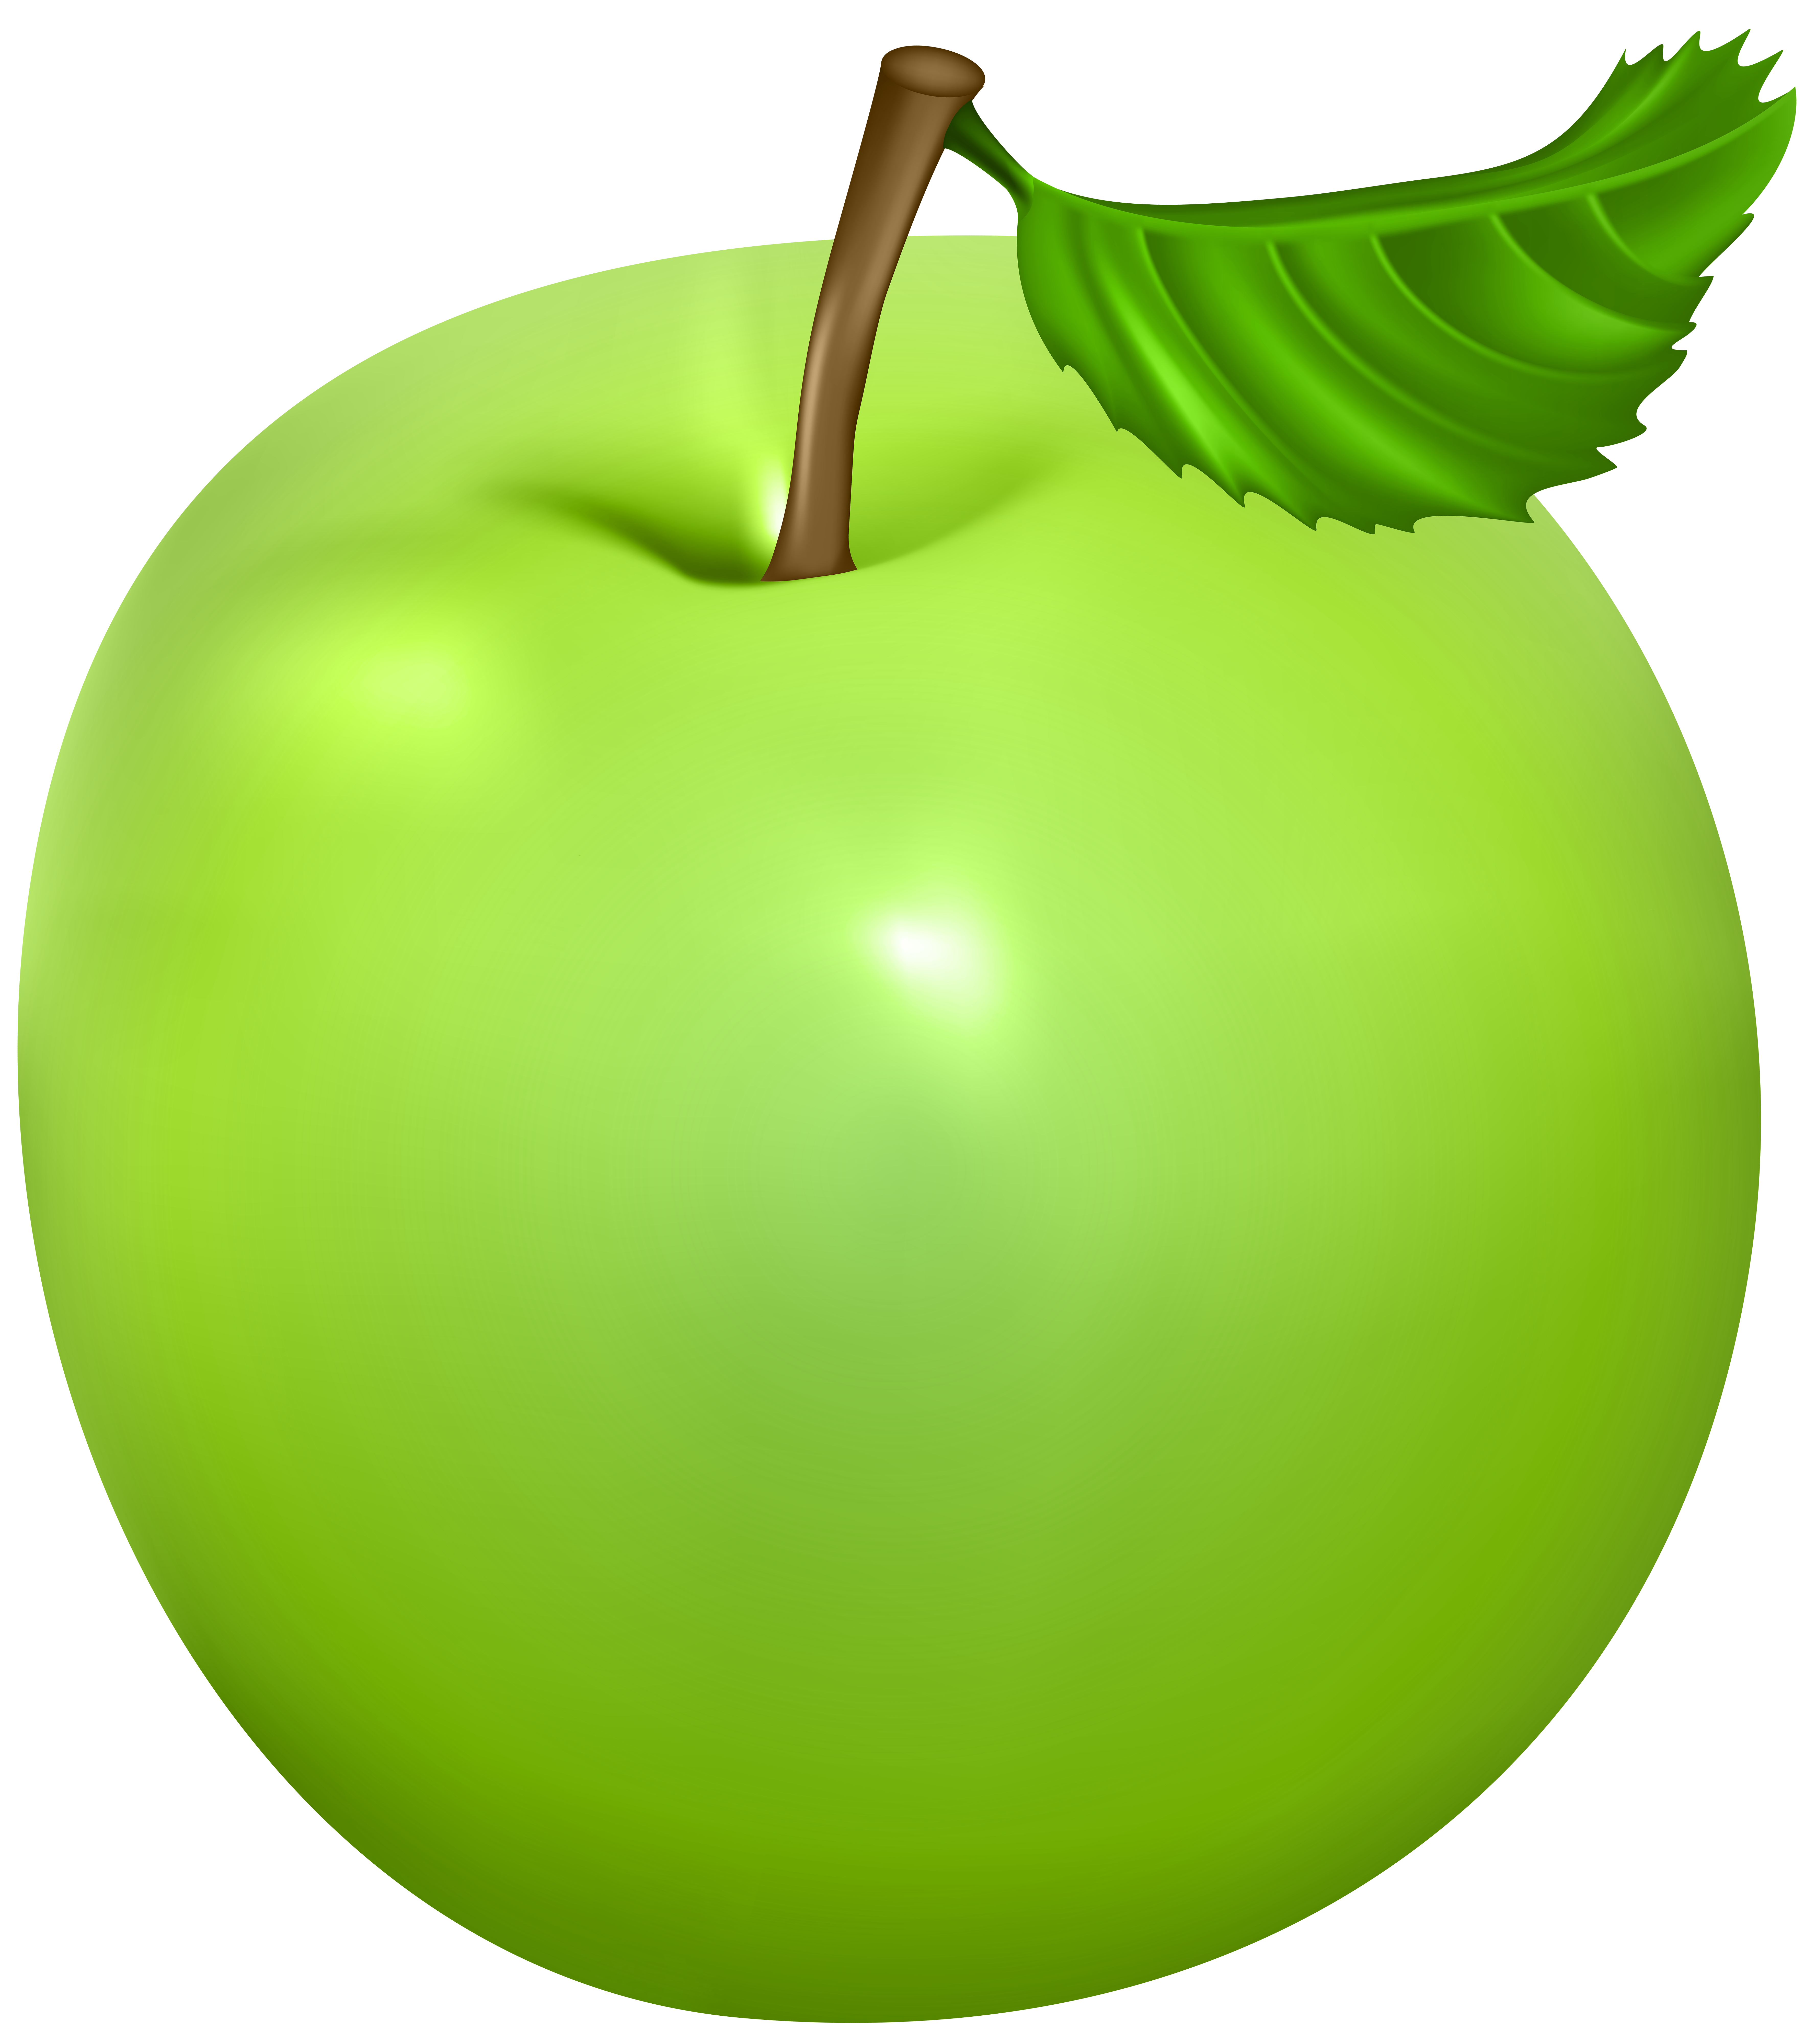 Green Apple PNG Clip Art Image.